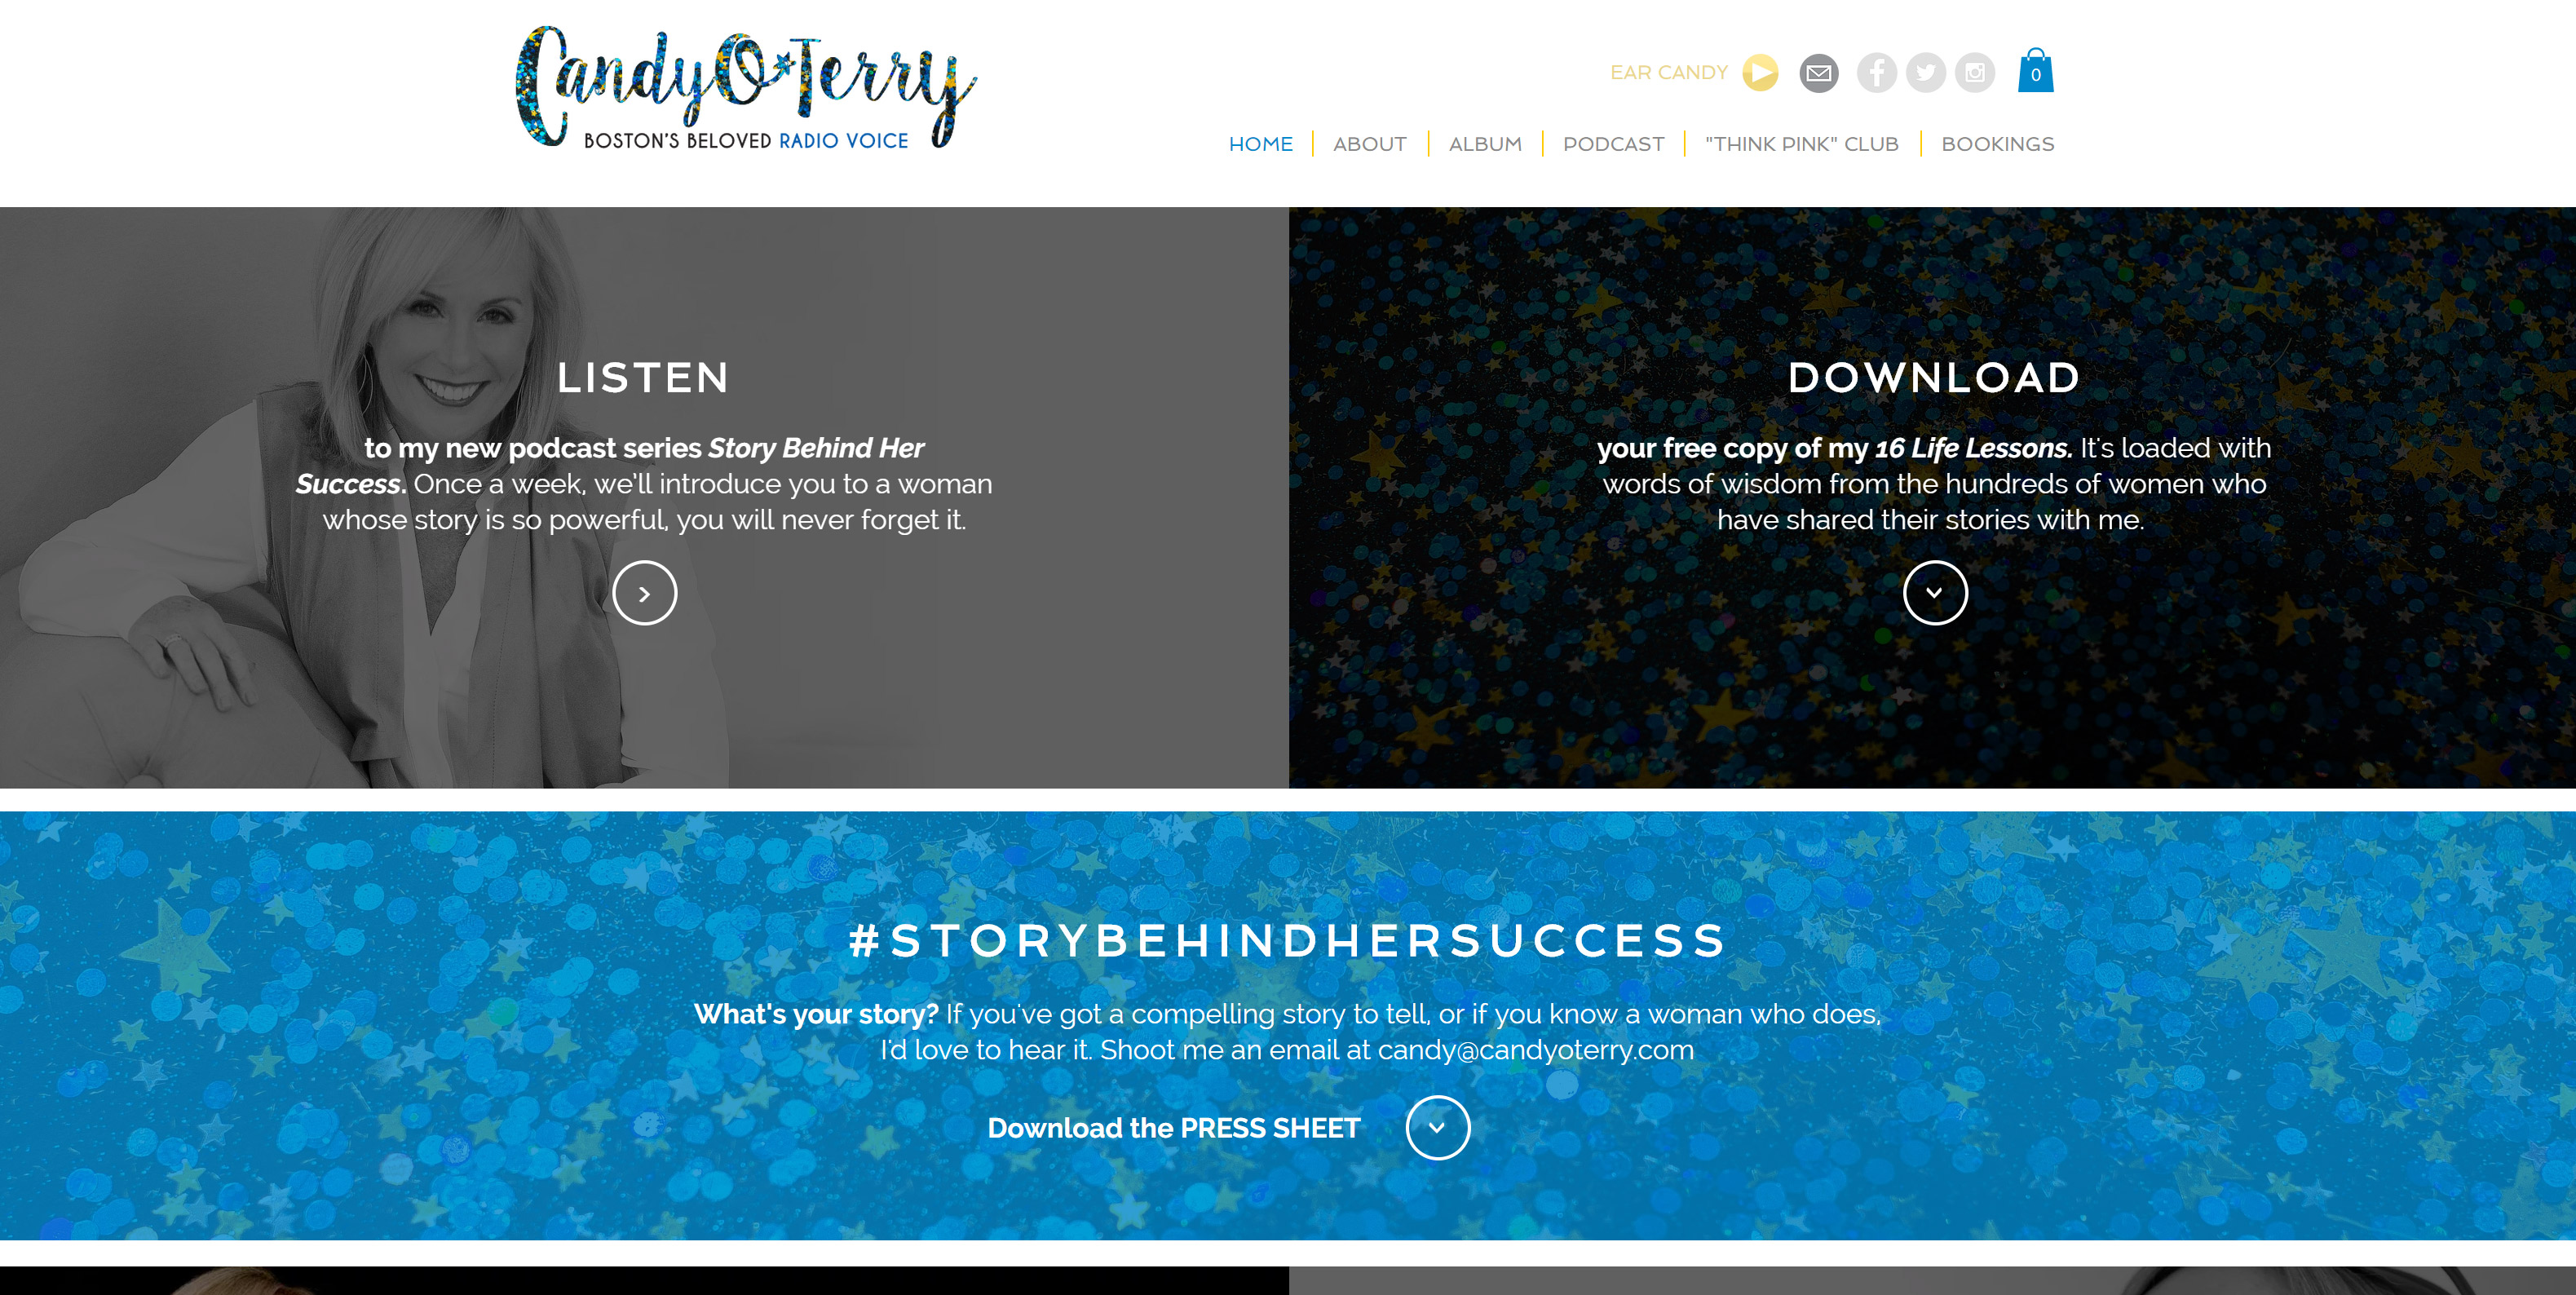 Sarah-Cas-Branding-and-Design-Website-Design-Candy-Oterry-12